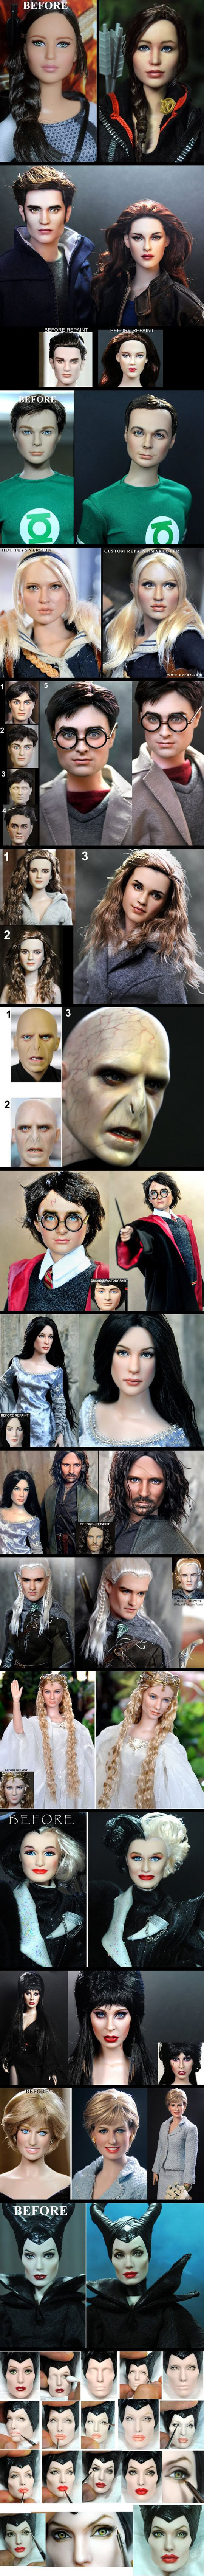 funny-doll-character-painting-artist